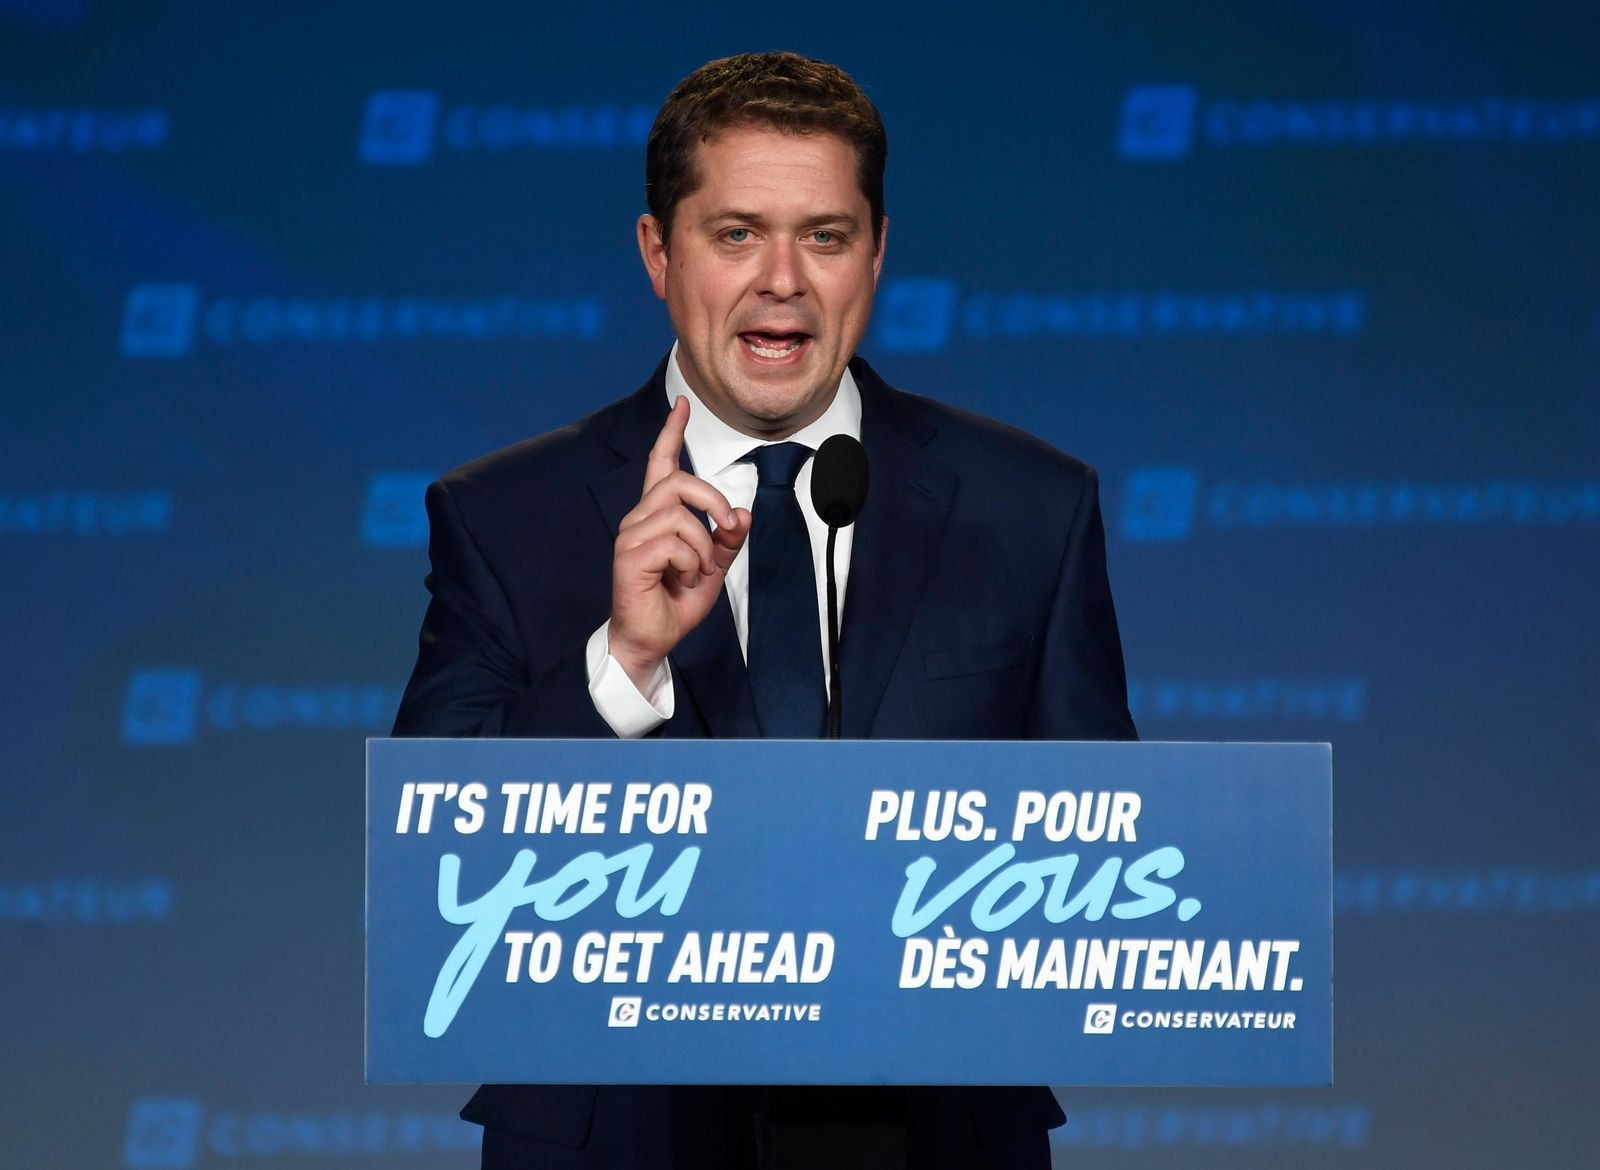 Conservative leader Andrew Scheer speaks at Conservative election headquarters in Regina, Saskatchewan, on Monday, Oct. 21, 2019. (Jeff McIntosh/The Canadian Press via AP)